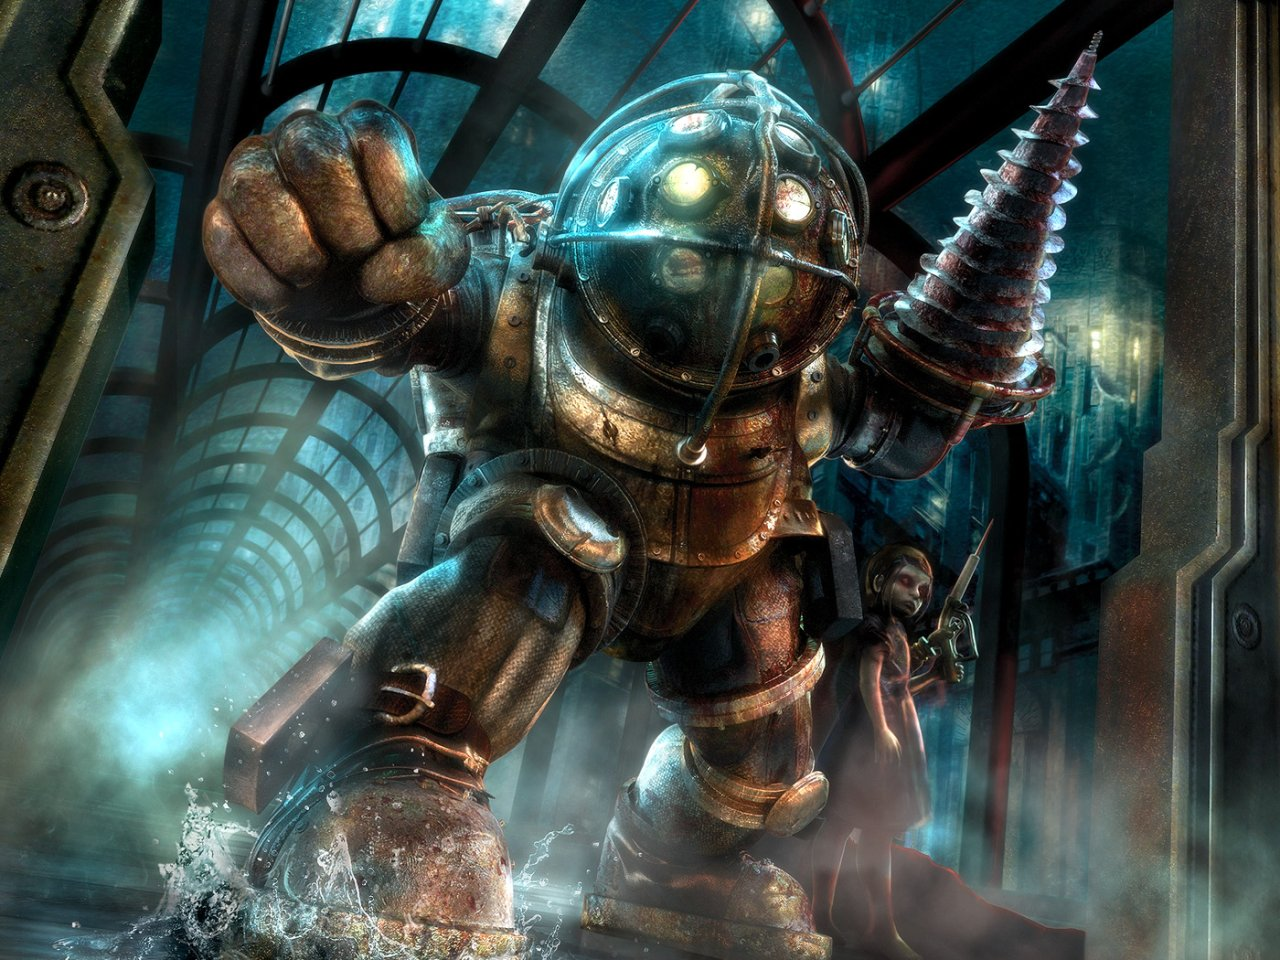 Review: BioShock 2